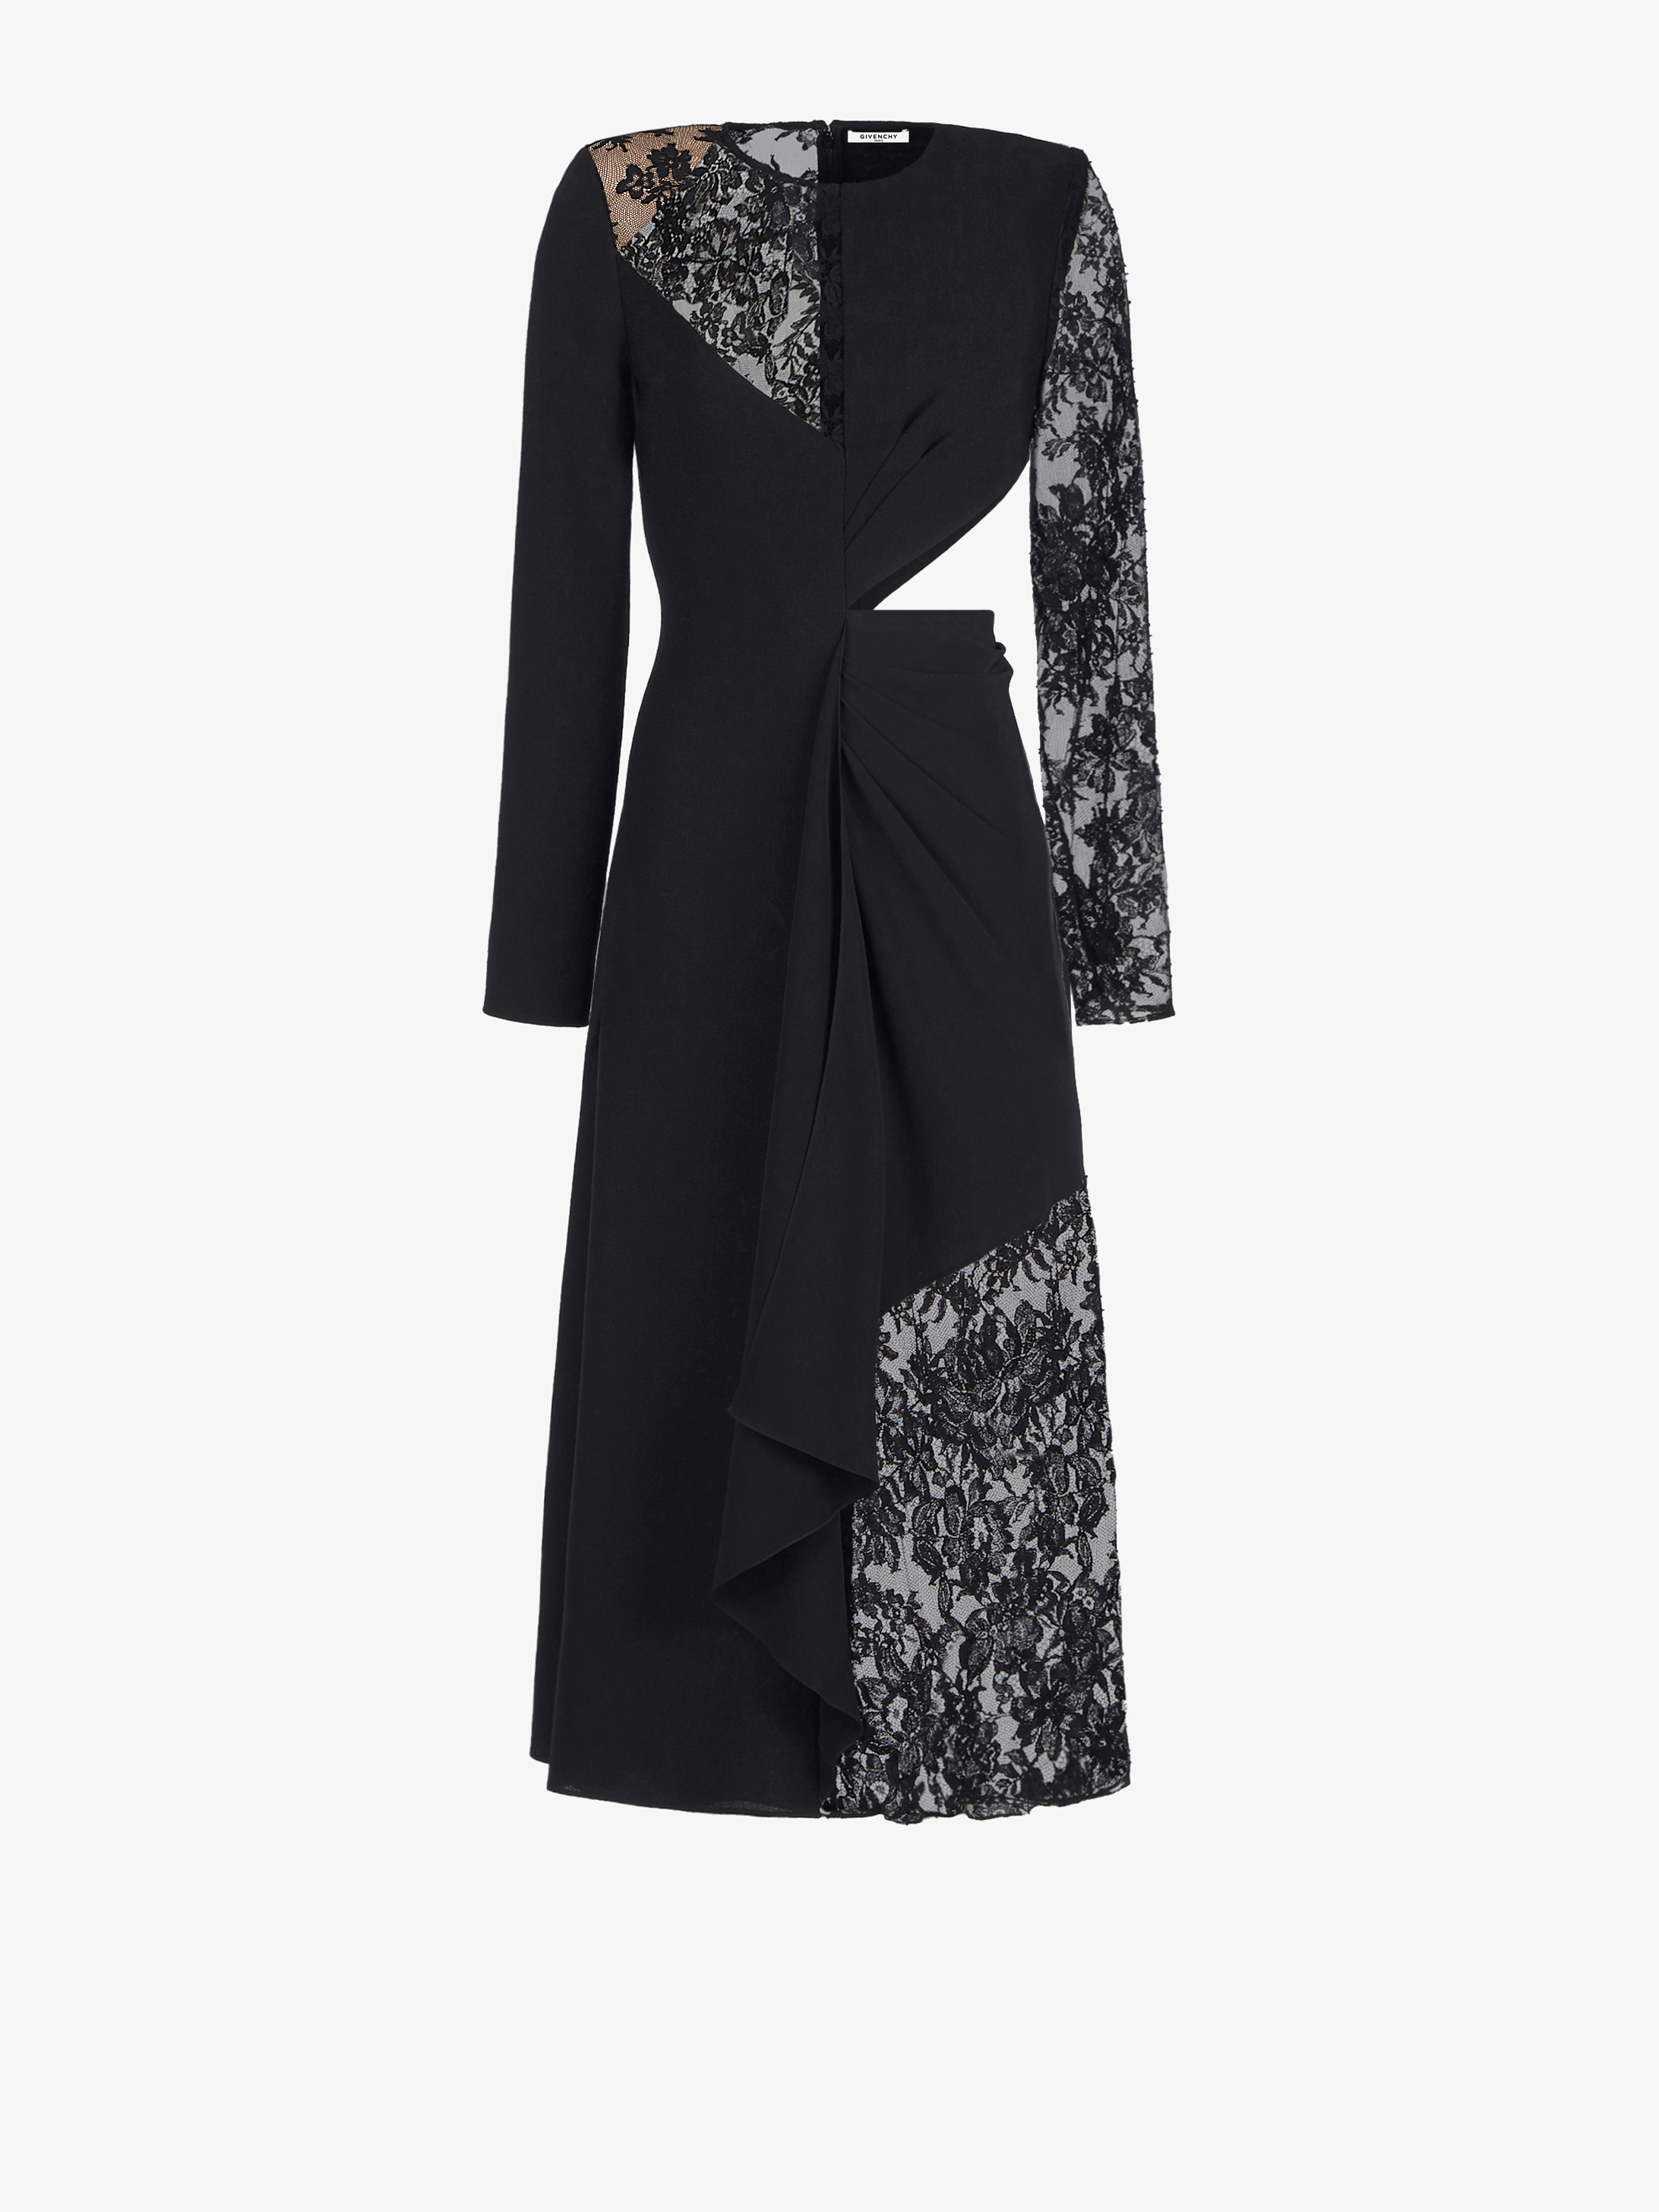 Asymmetrical midi dress in crepe with chantilly lace details